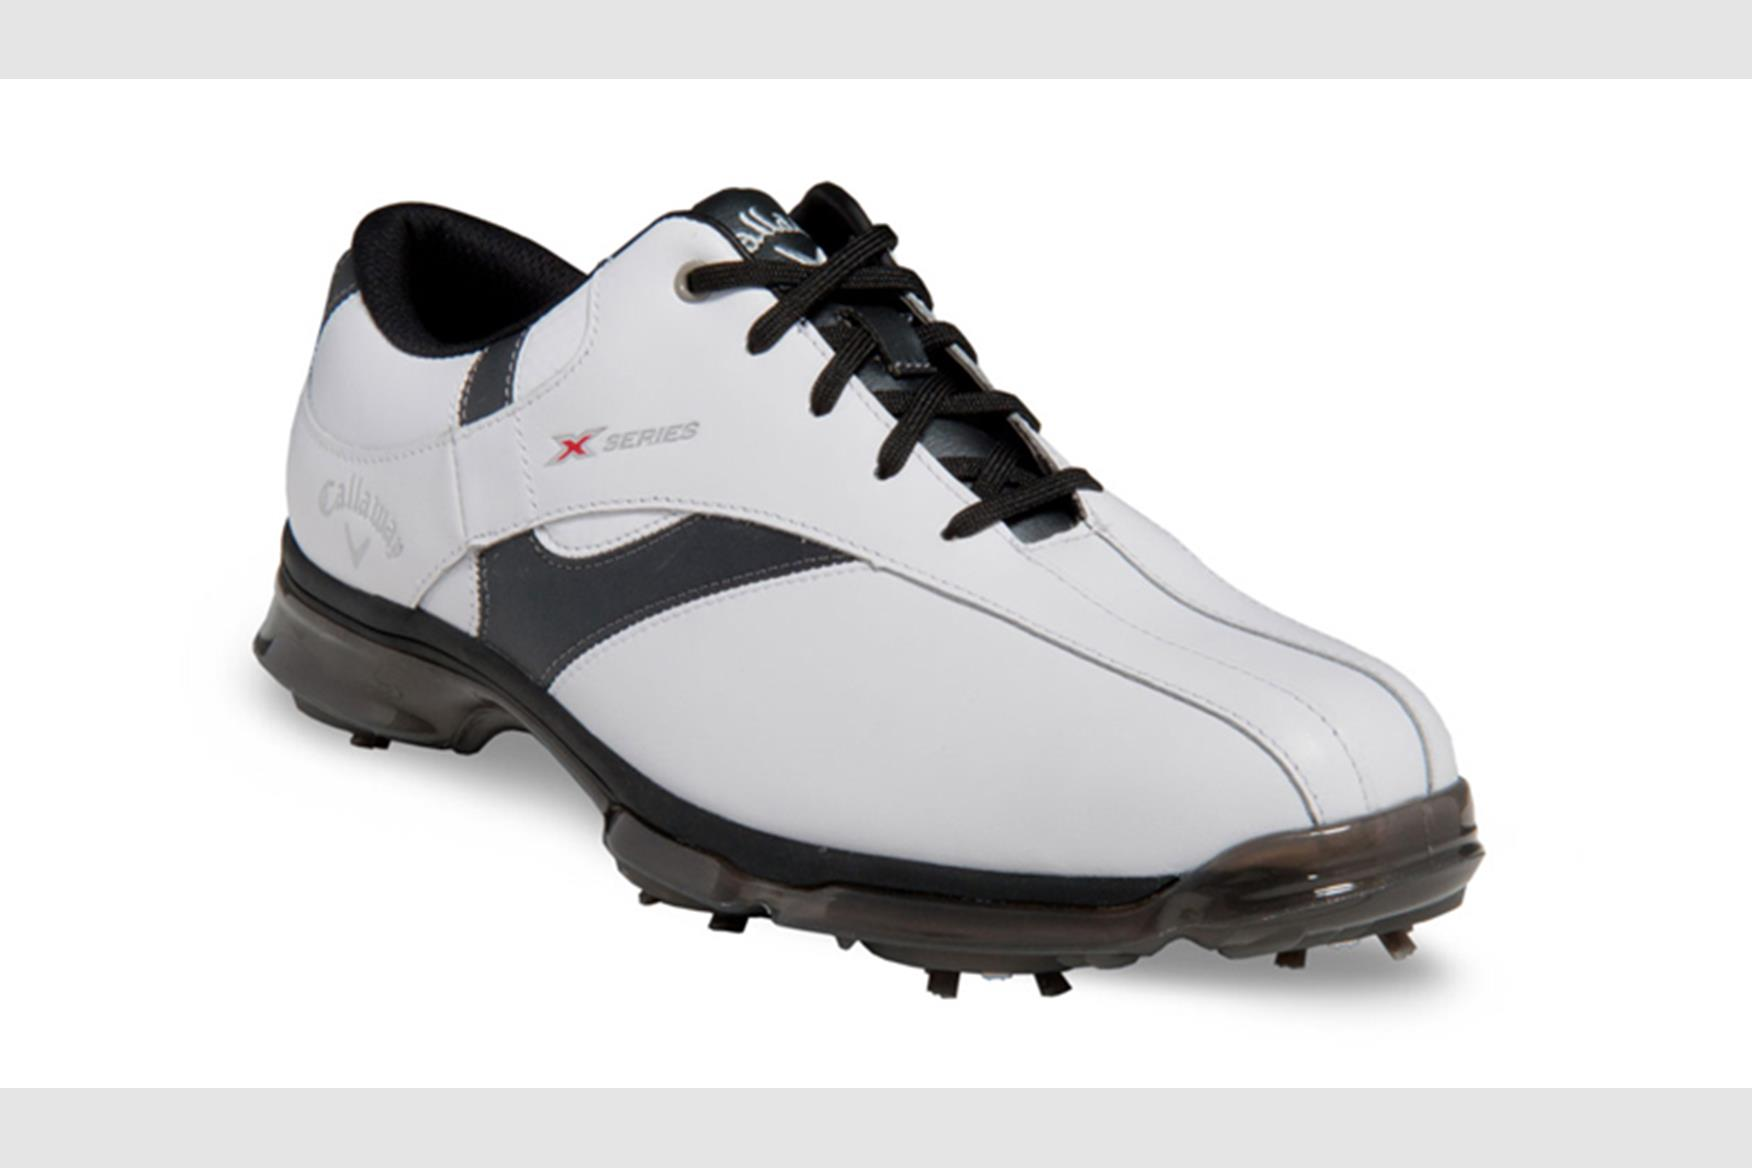 official images many styles cheap for sale Callaway X-Series Nitro Golf Shoes Review | Equipment Reviews ...